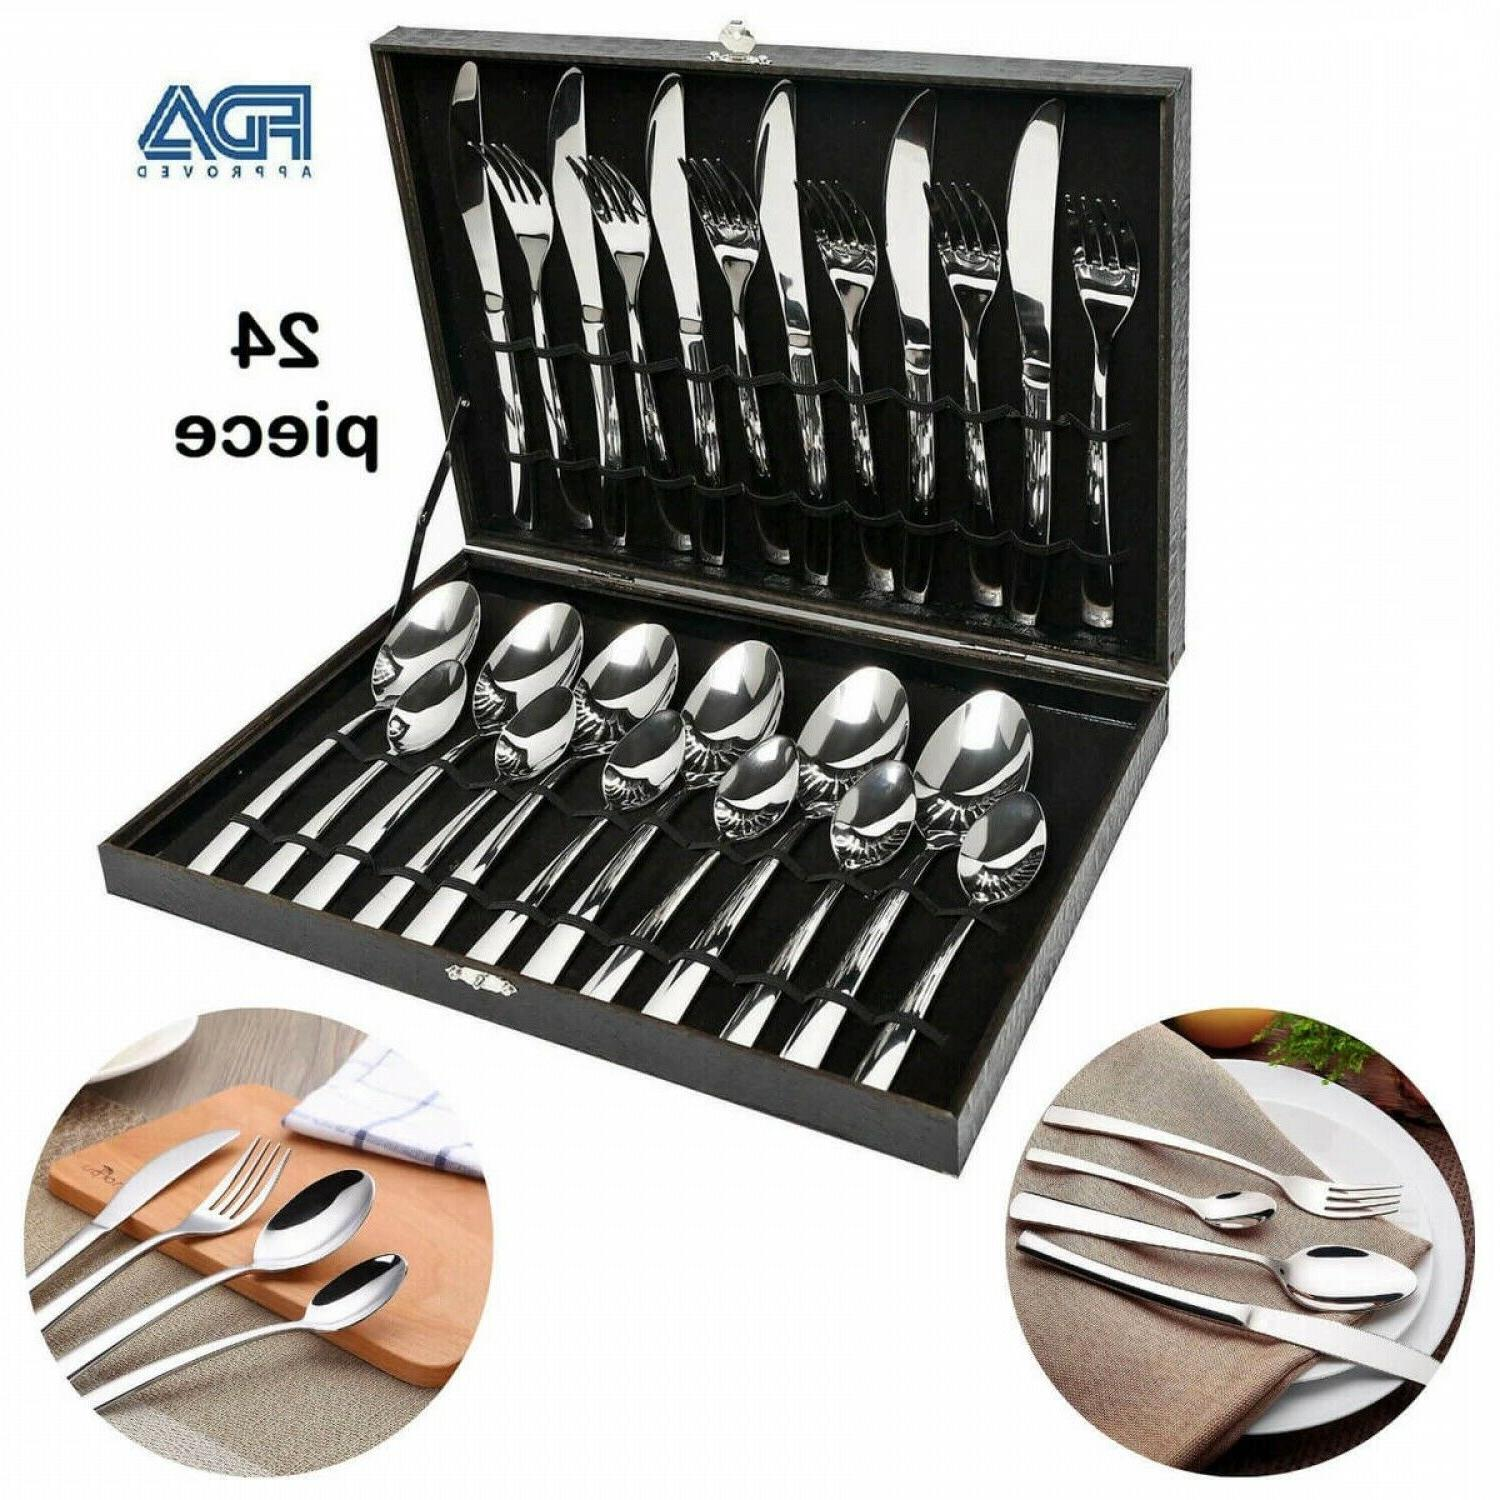 Modern Silverware Large Steel 24 Piece